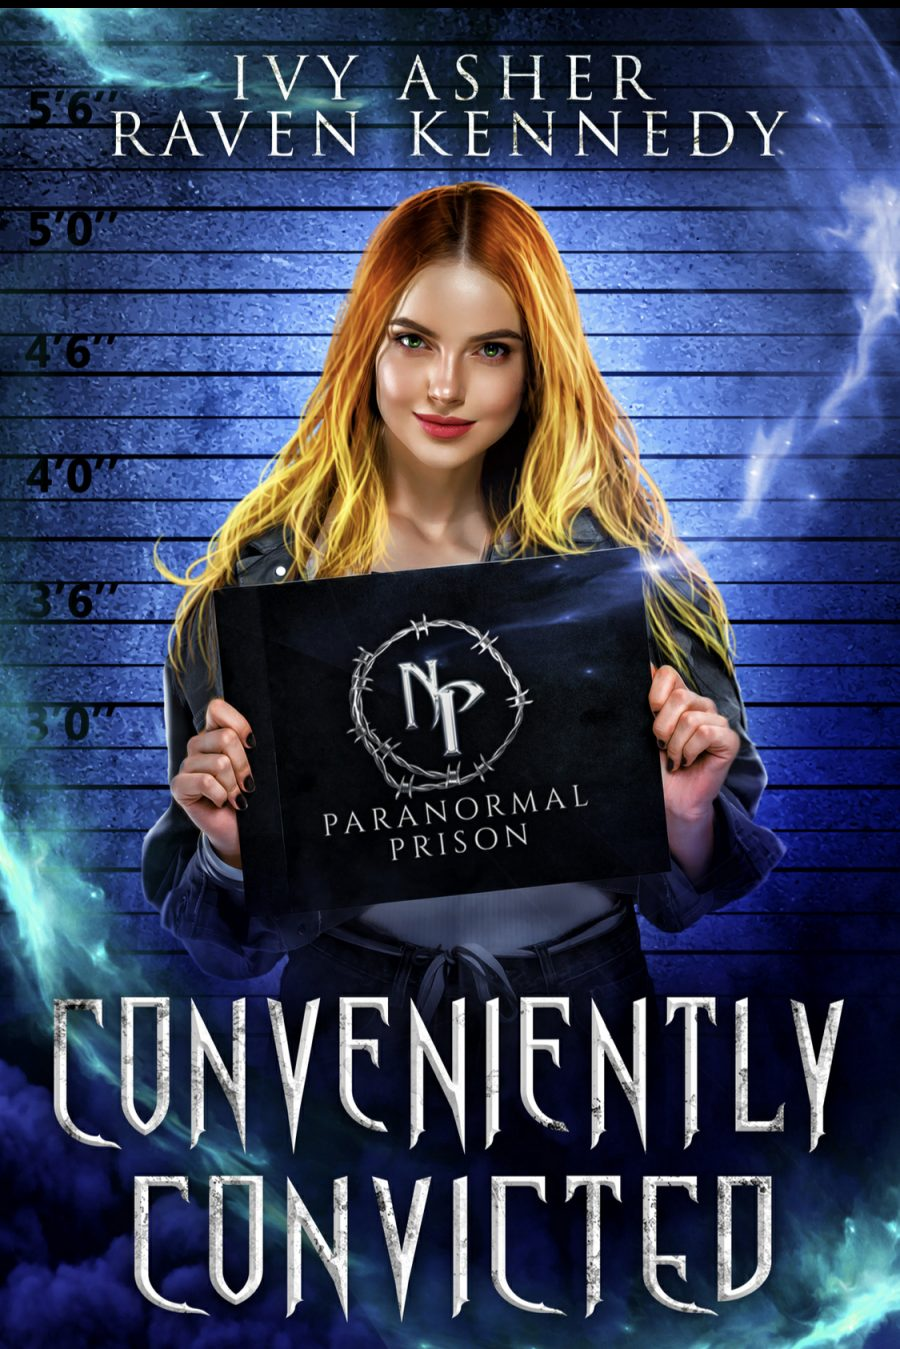 Conveniently Convicted by Ivy Asher & Raven Kennedy - A Book Review #BookReview #5Stars #PNR #HEA #SharedUniverse #KindleUnlimited #KU #ParanormalPrison